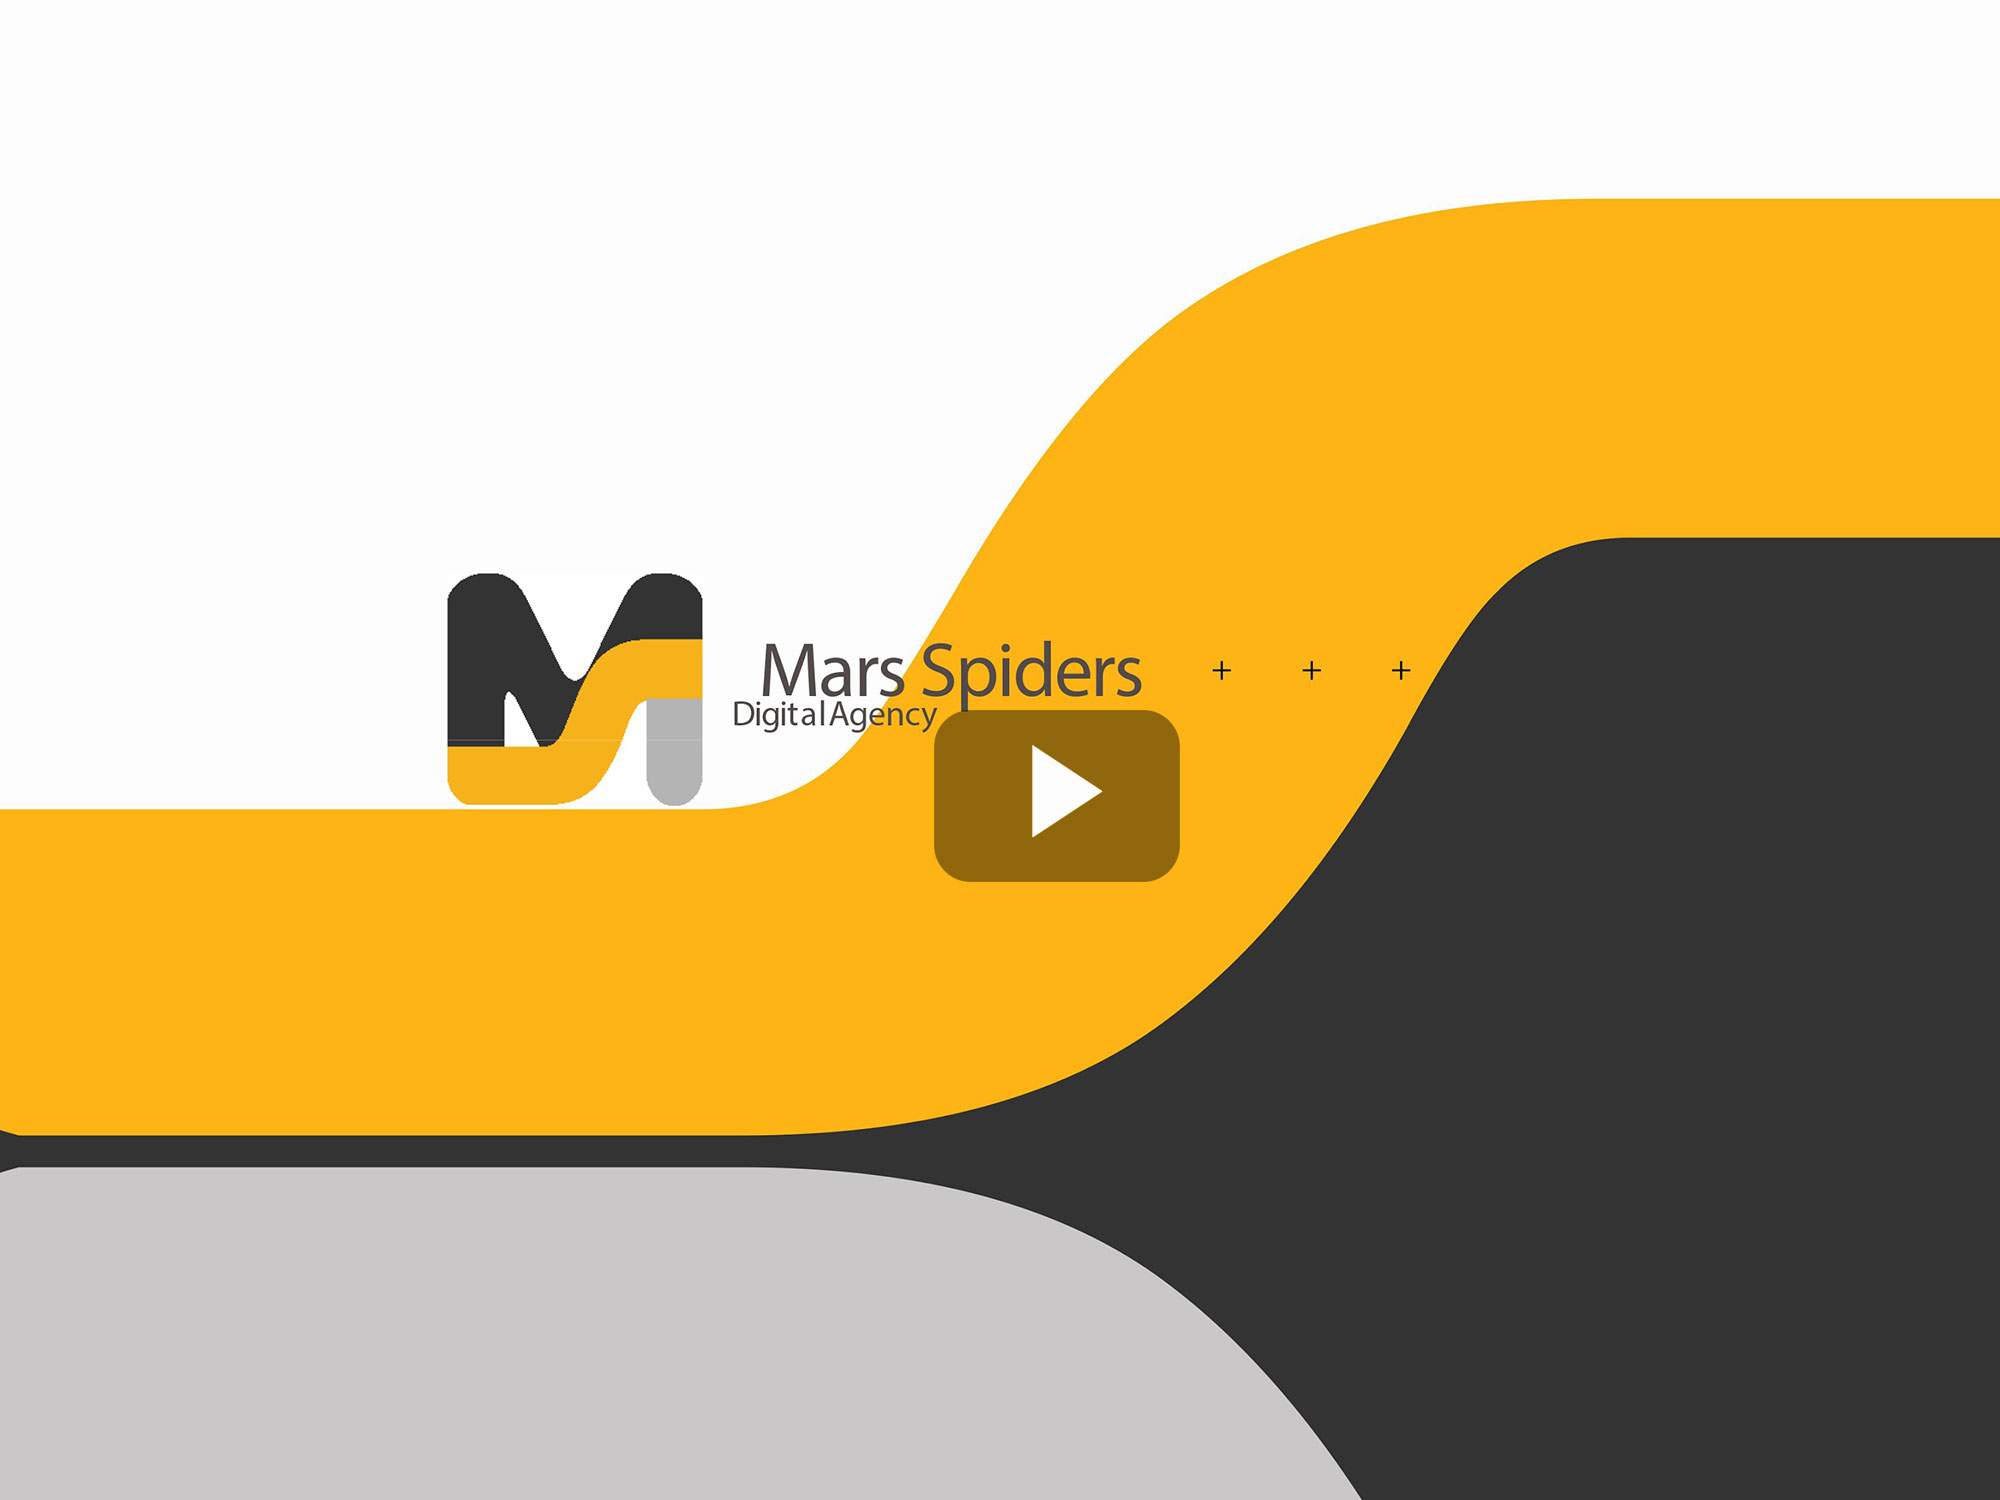 hit this image and watch amazing showreel of London brave digital company called Mars Spiders